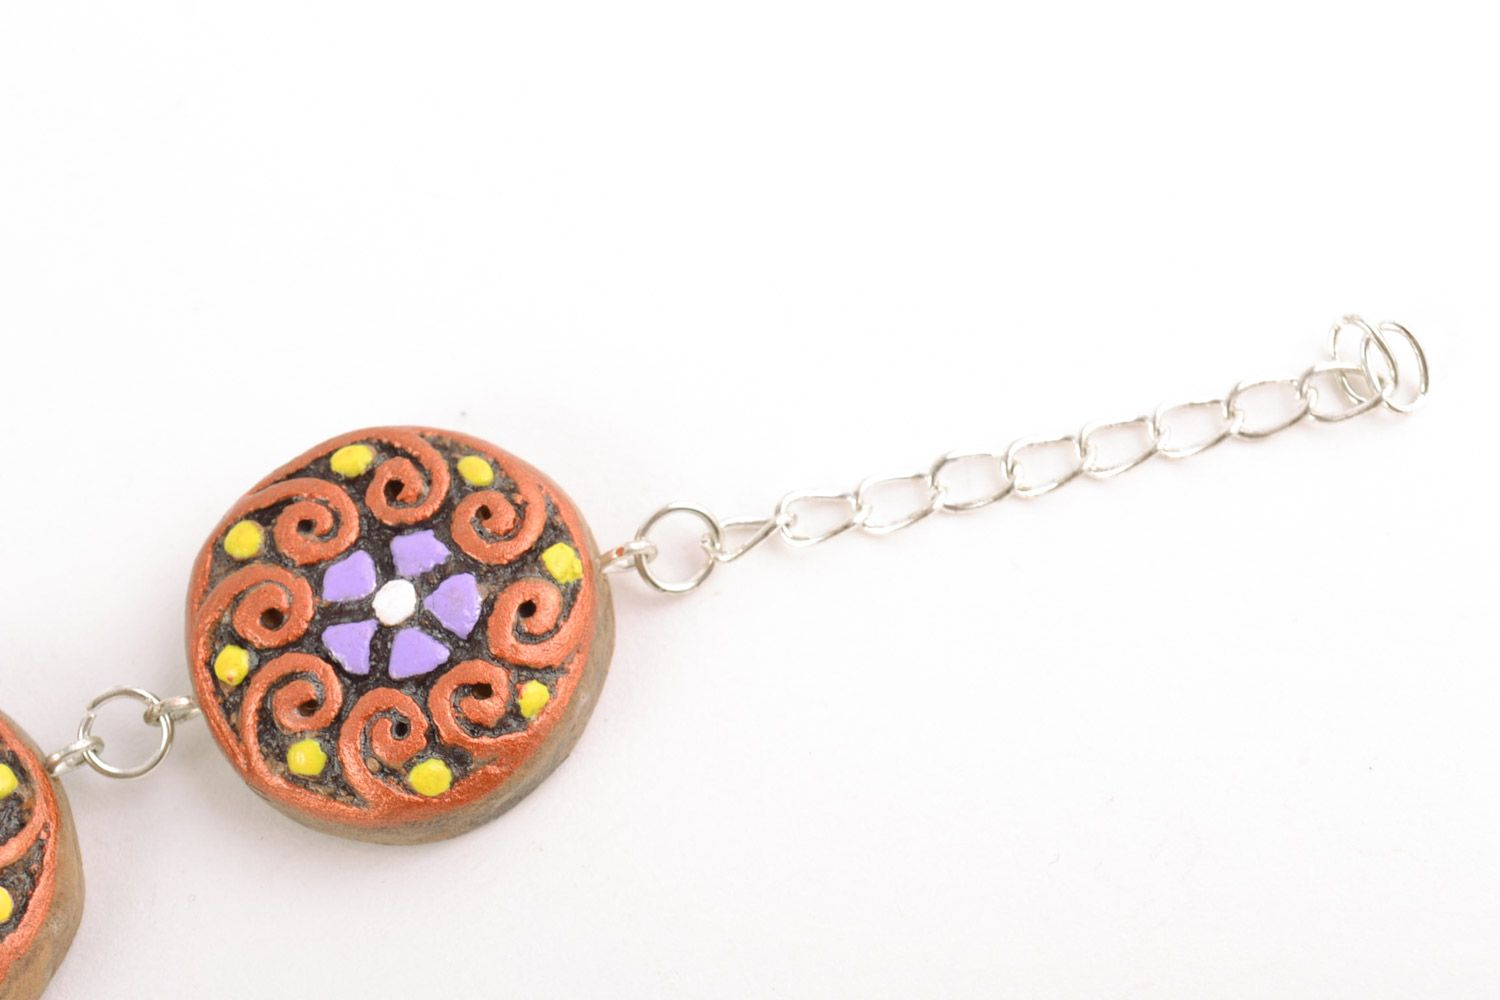 clay bracelets Beautiful handmade clay neck pendant painted with acrylics on chain - MADEheart.com